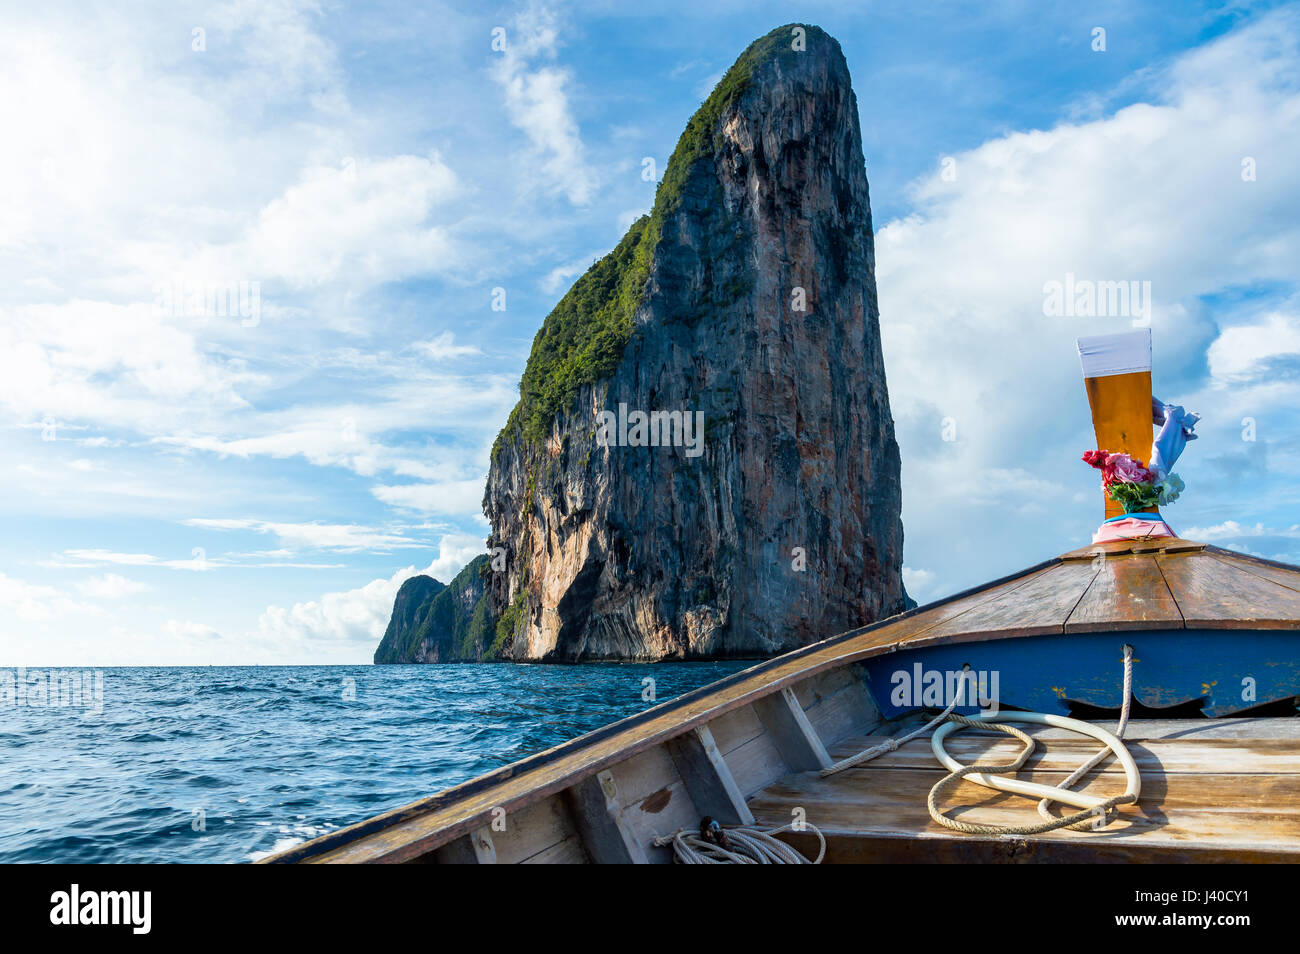 Longtail Boat In Sea Against Blue Sky and Island - Stock Image